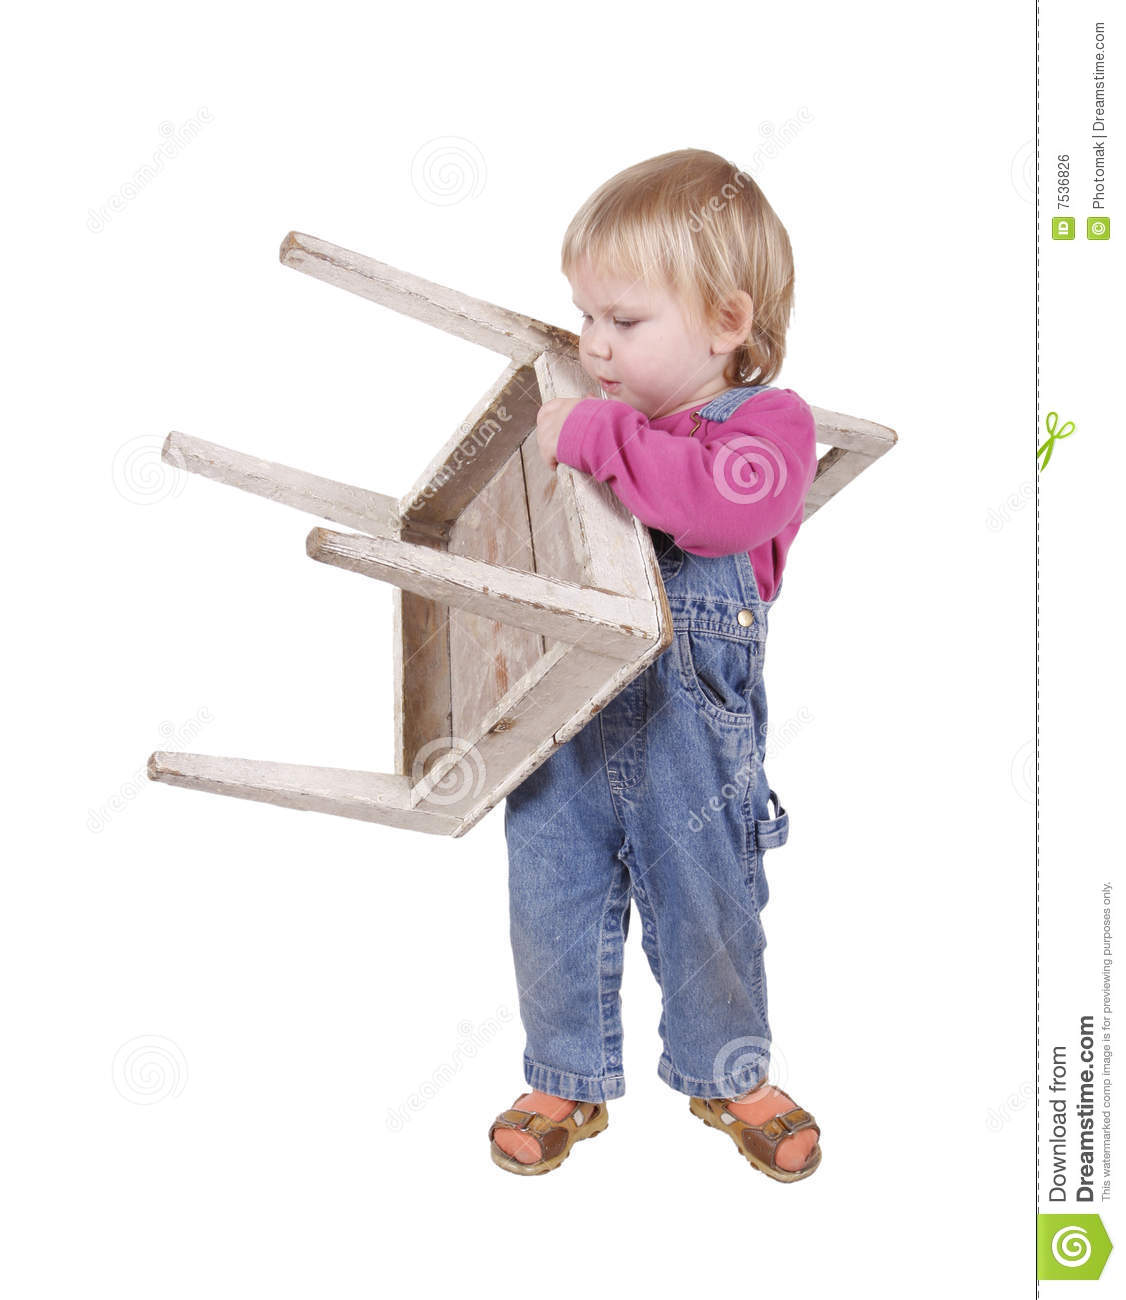 little girl chairs threshold barrel chair young carries royalty free stock image